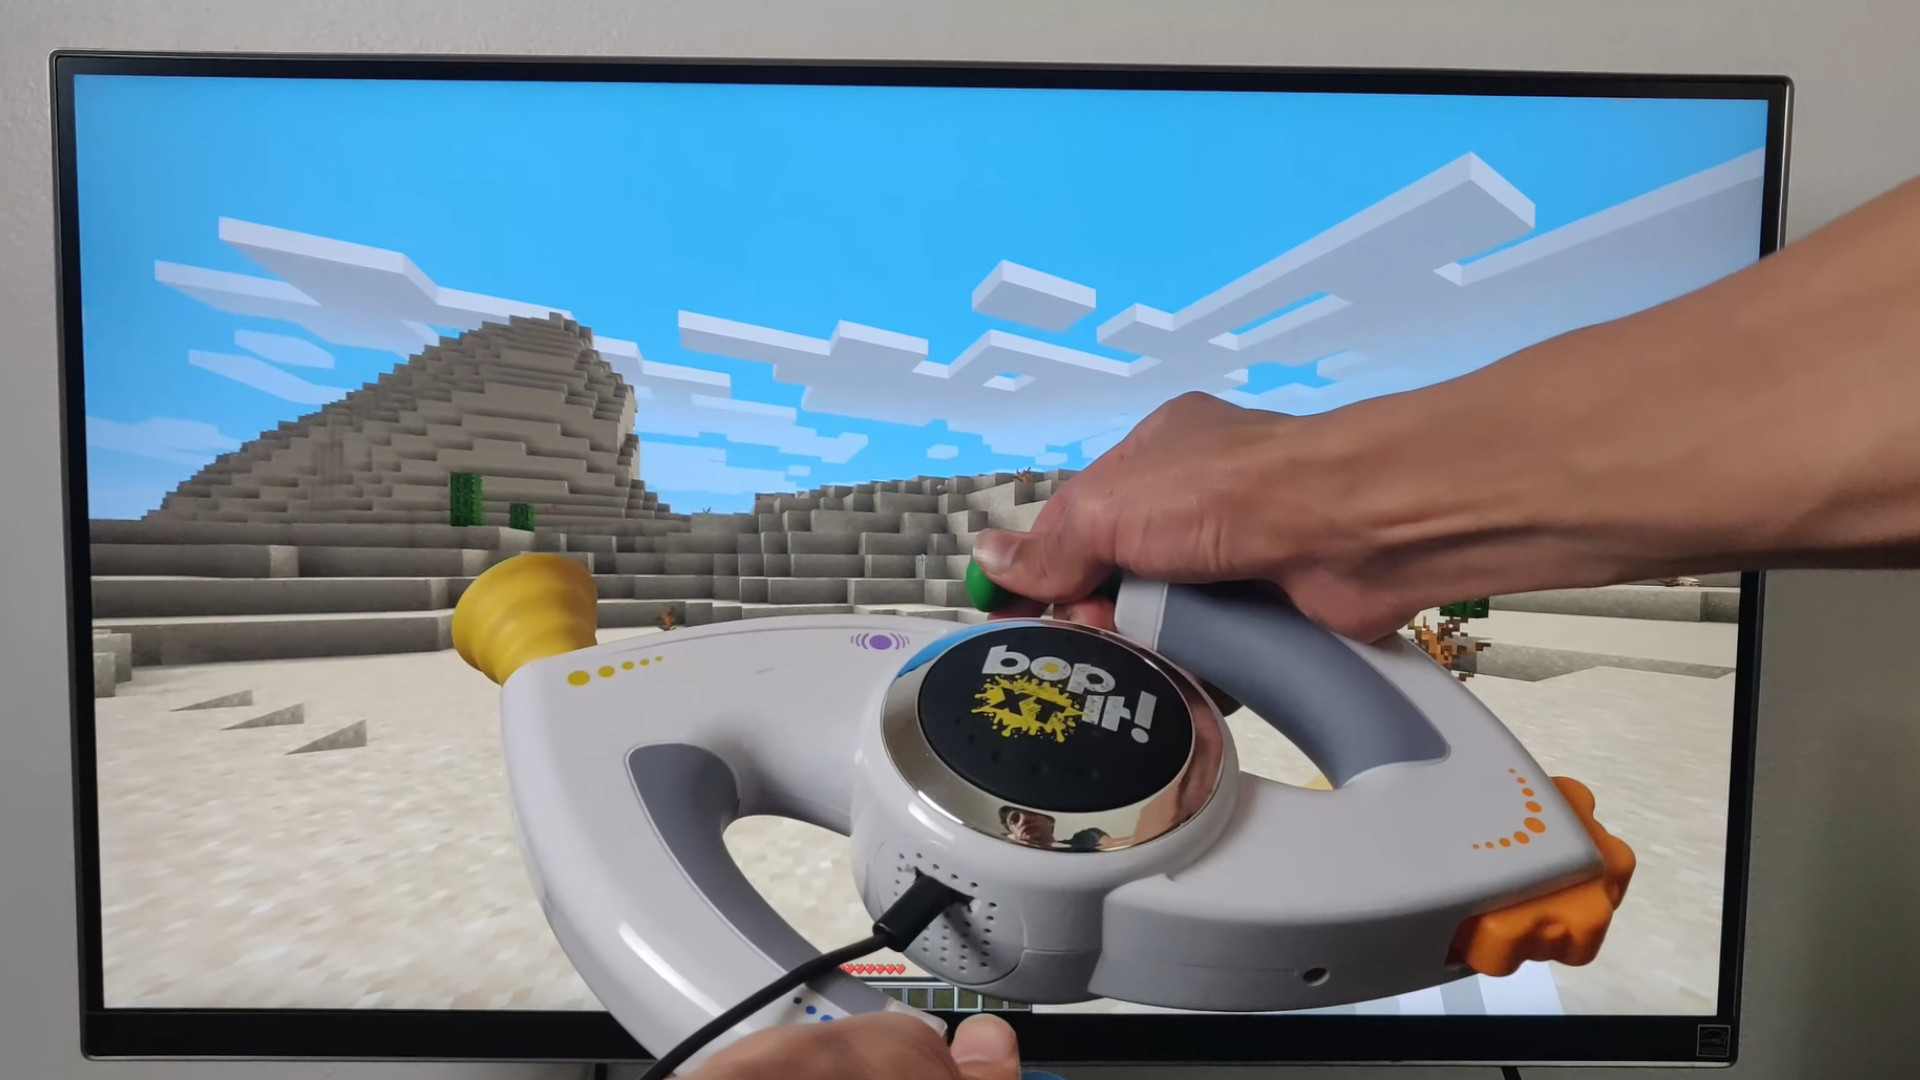 It's time to play Minecraft with a Bop It